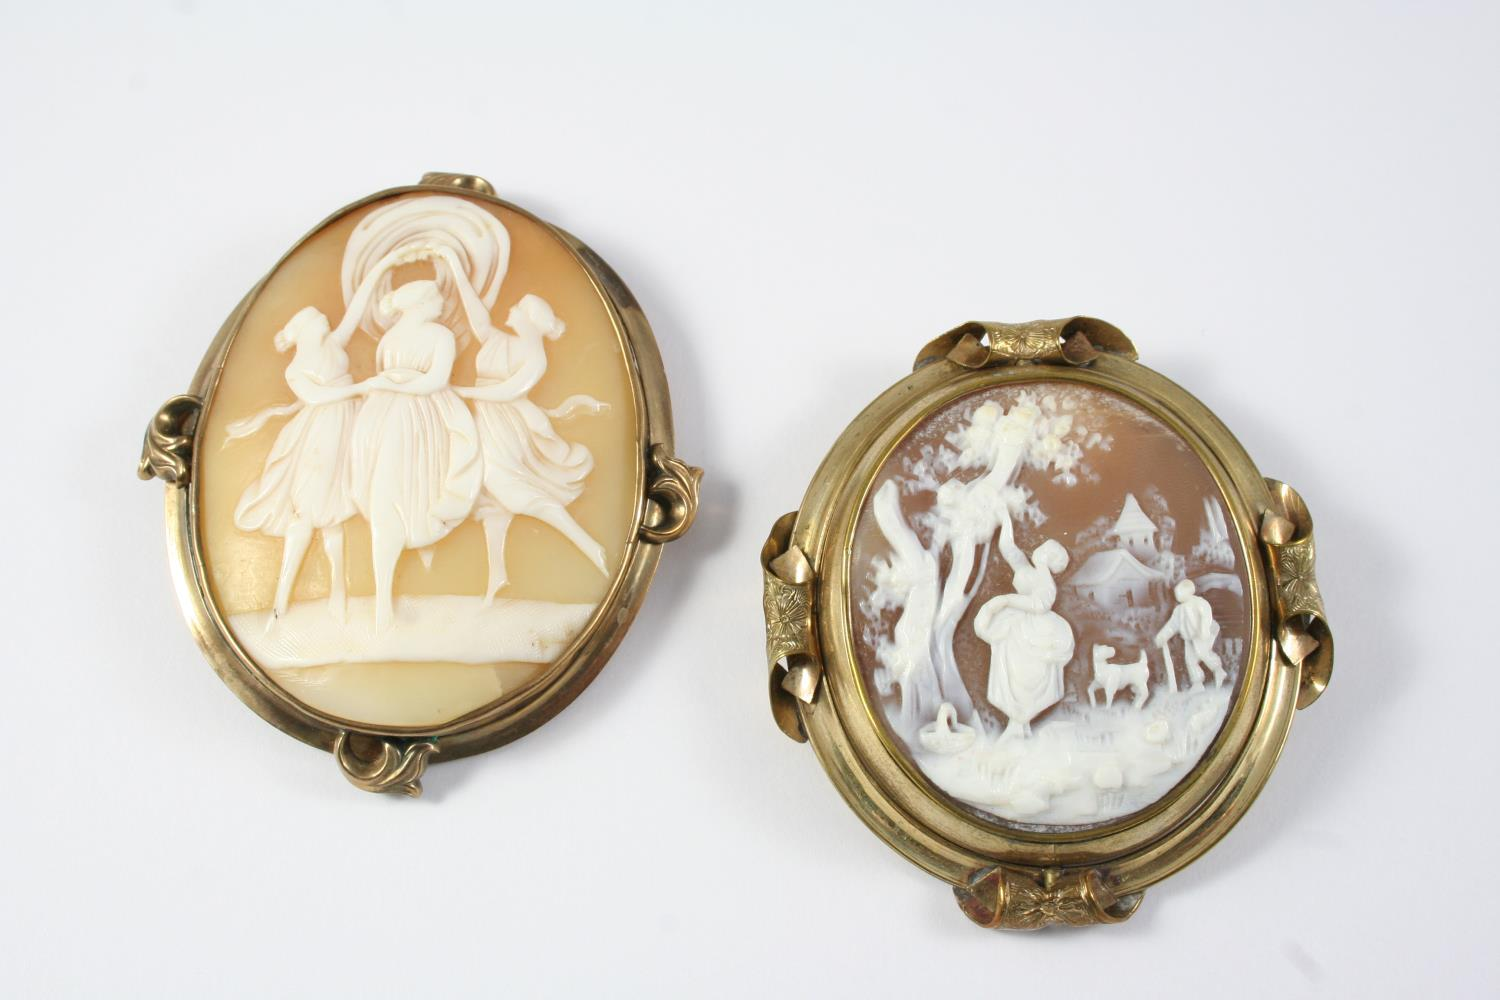 A CARVED SHELL CAMEO BROOCH depicting The Three Graces, in a gold mount, 6.5 x 5.5cm., together with